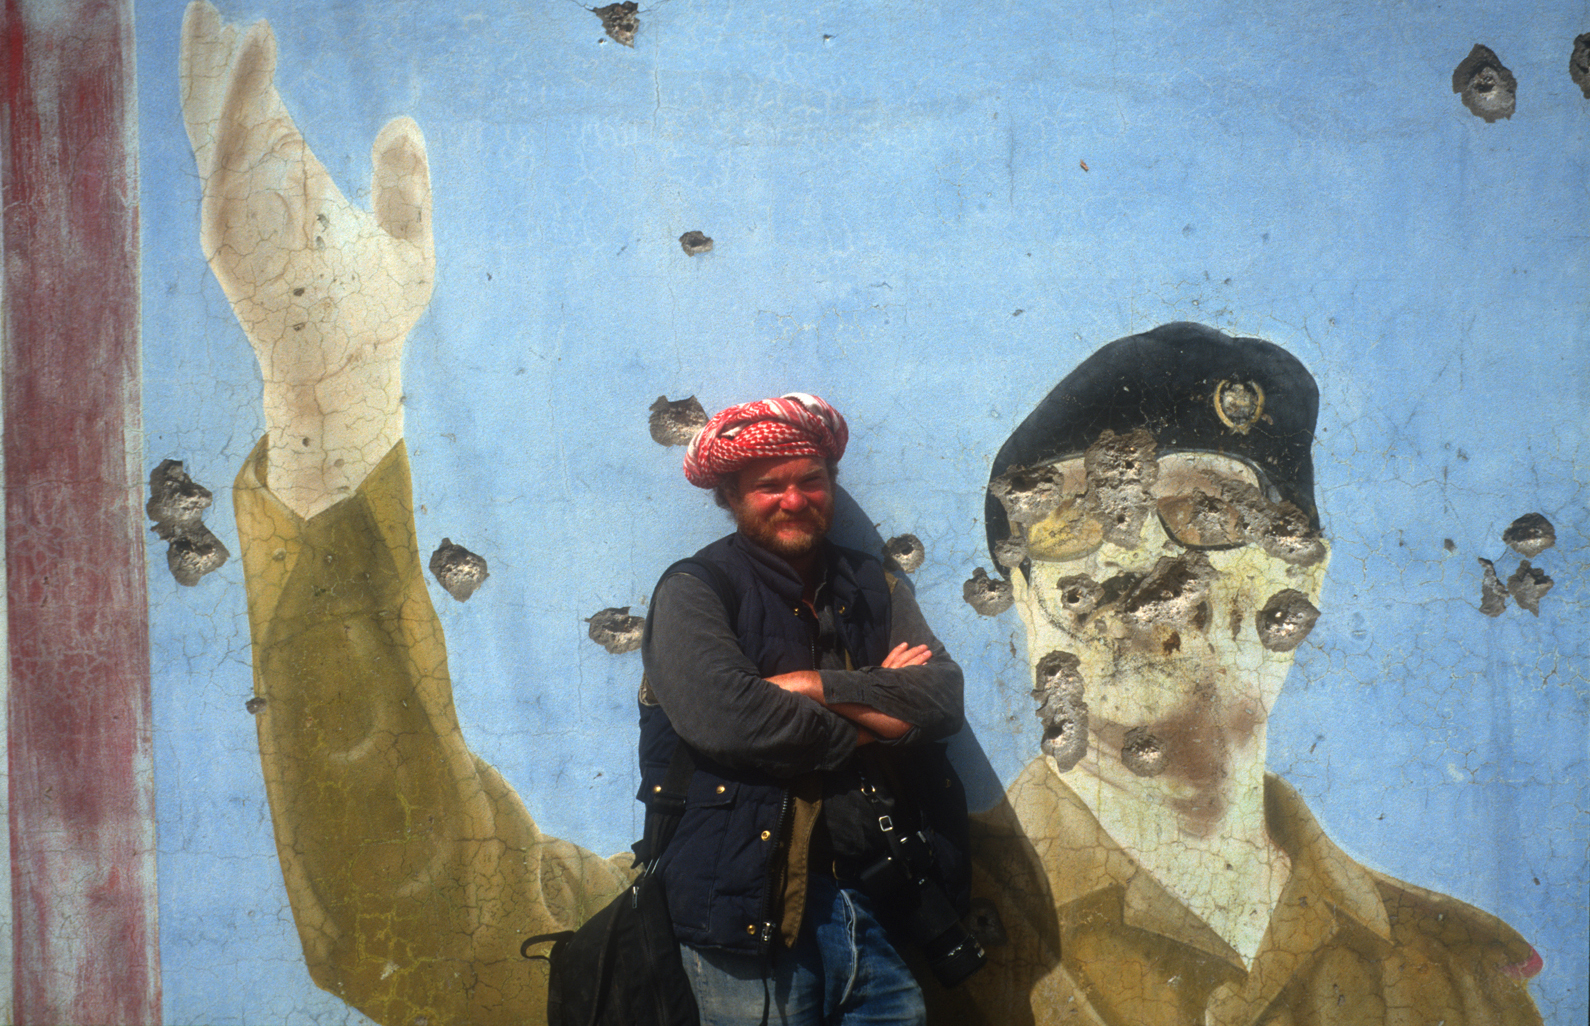 1991. Northern Iraq after the first Gulf War.